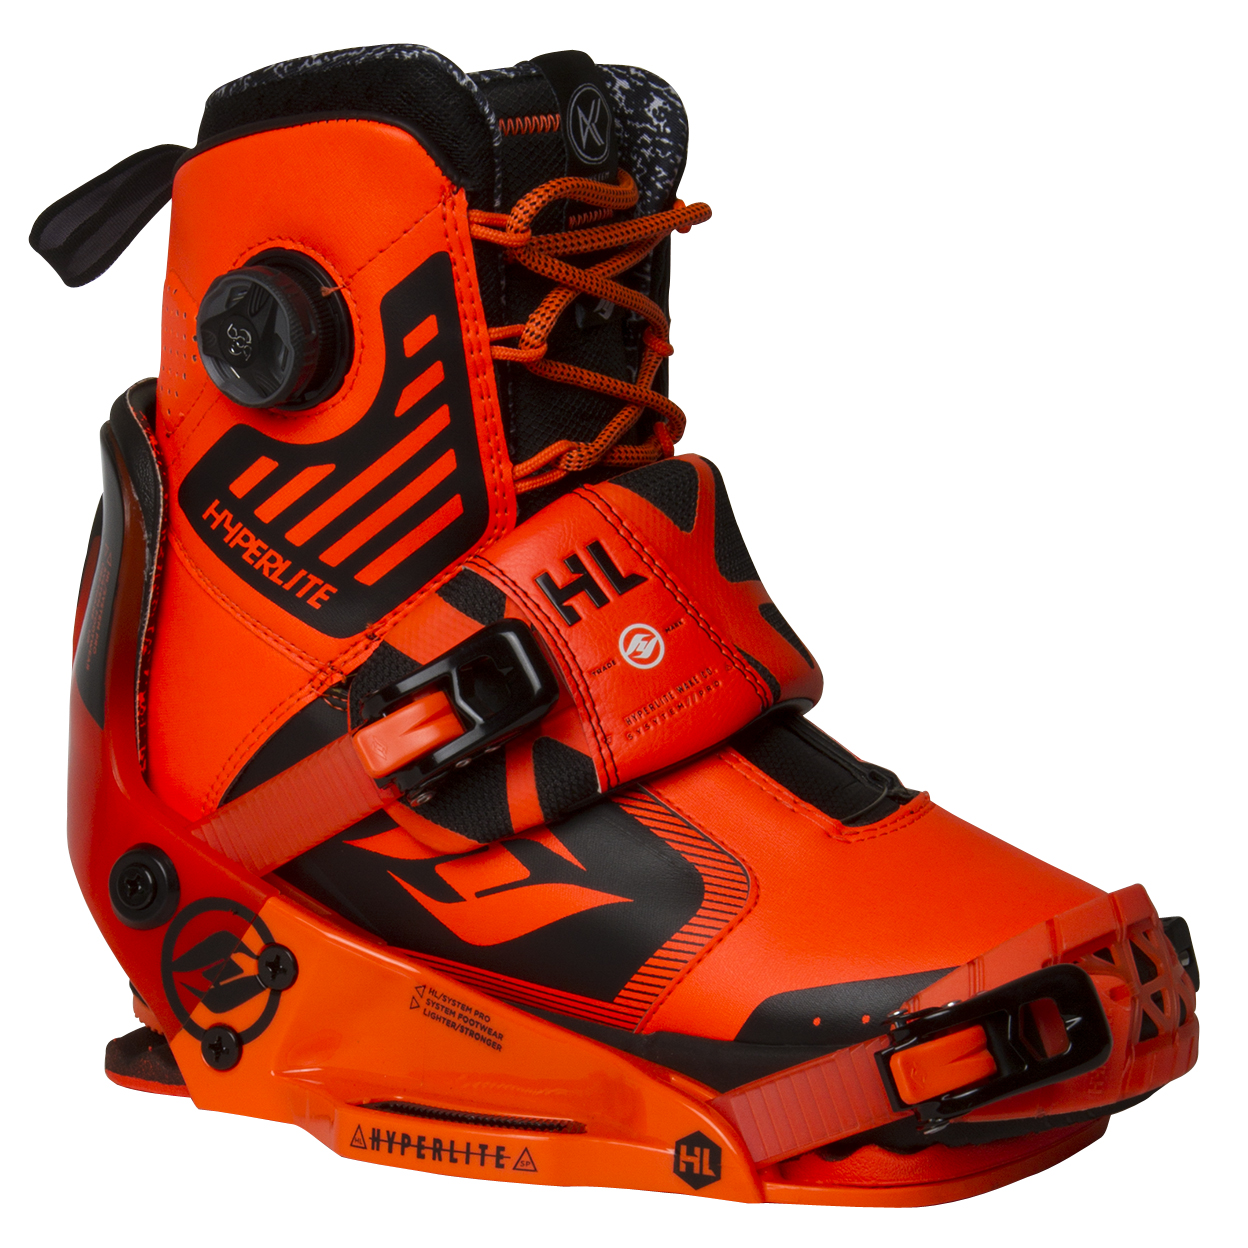 KRUZ SYSTEM BOOT W/THE SYSTEM BINDING PRO ORANGE HYPERLITE 2017